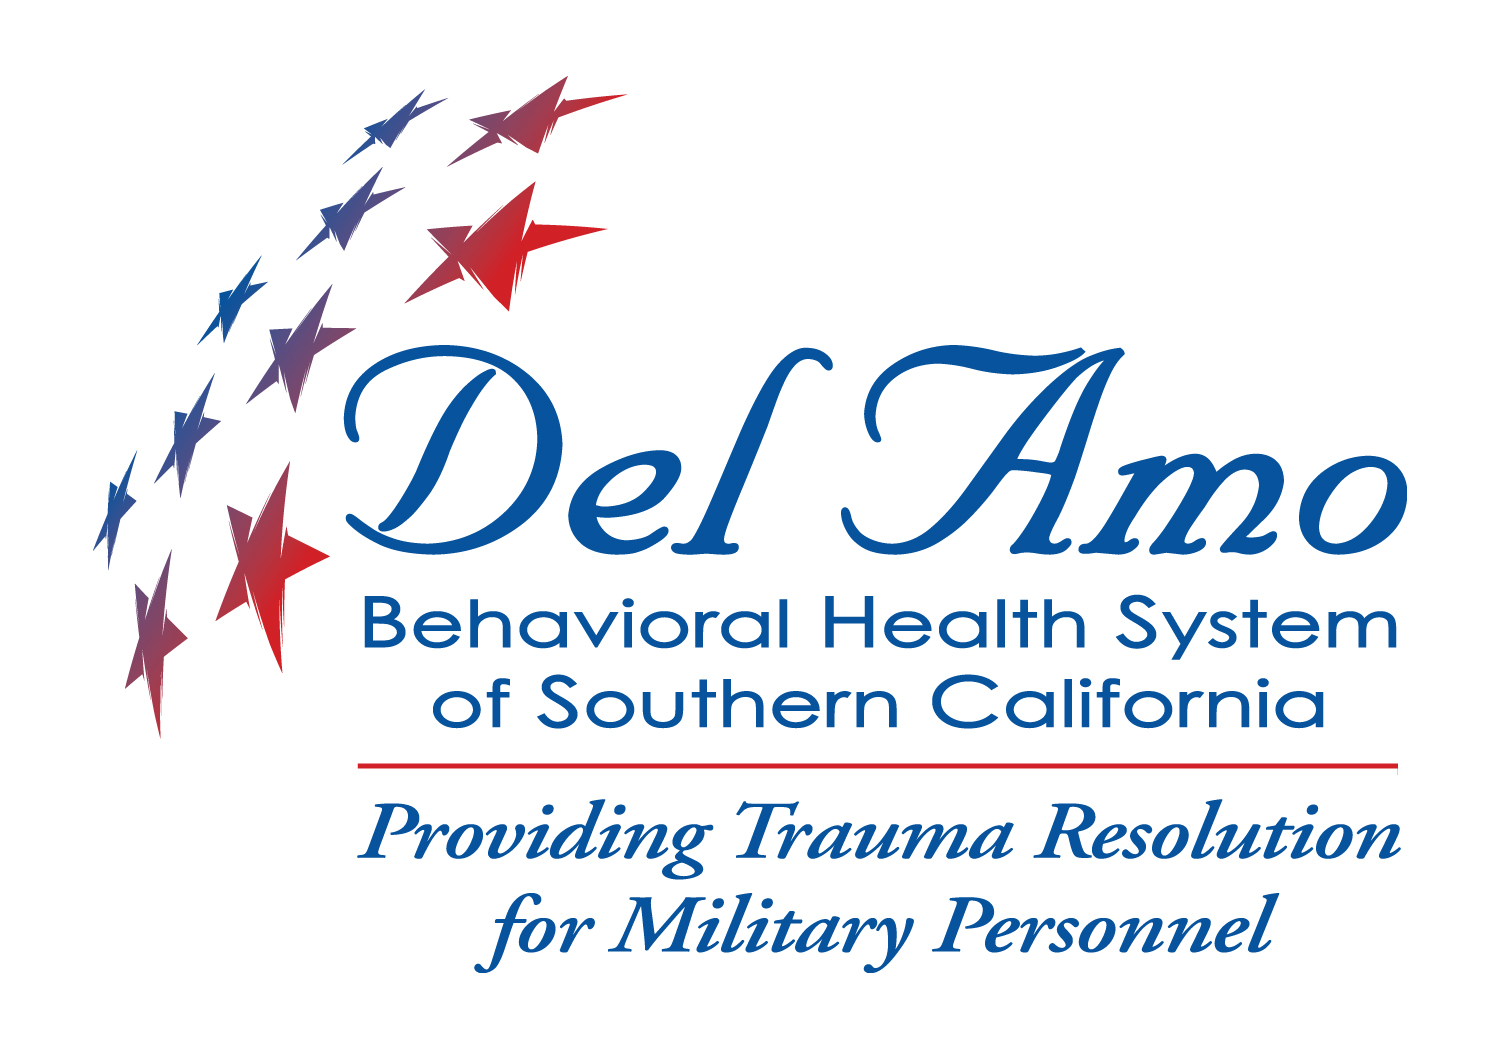 dating someone with military ptsd Posttraumatic stress disorder (ptsd) is a serious mental condition that some people develop after a shocking, terrifying, or dangerous event these events are called traumas.